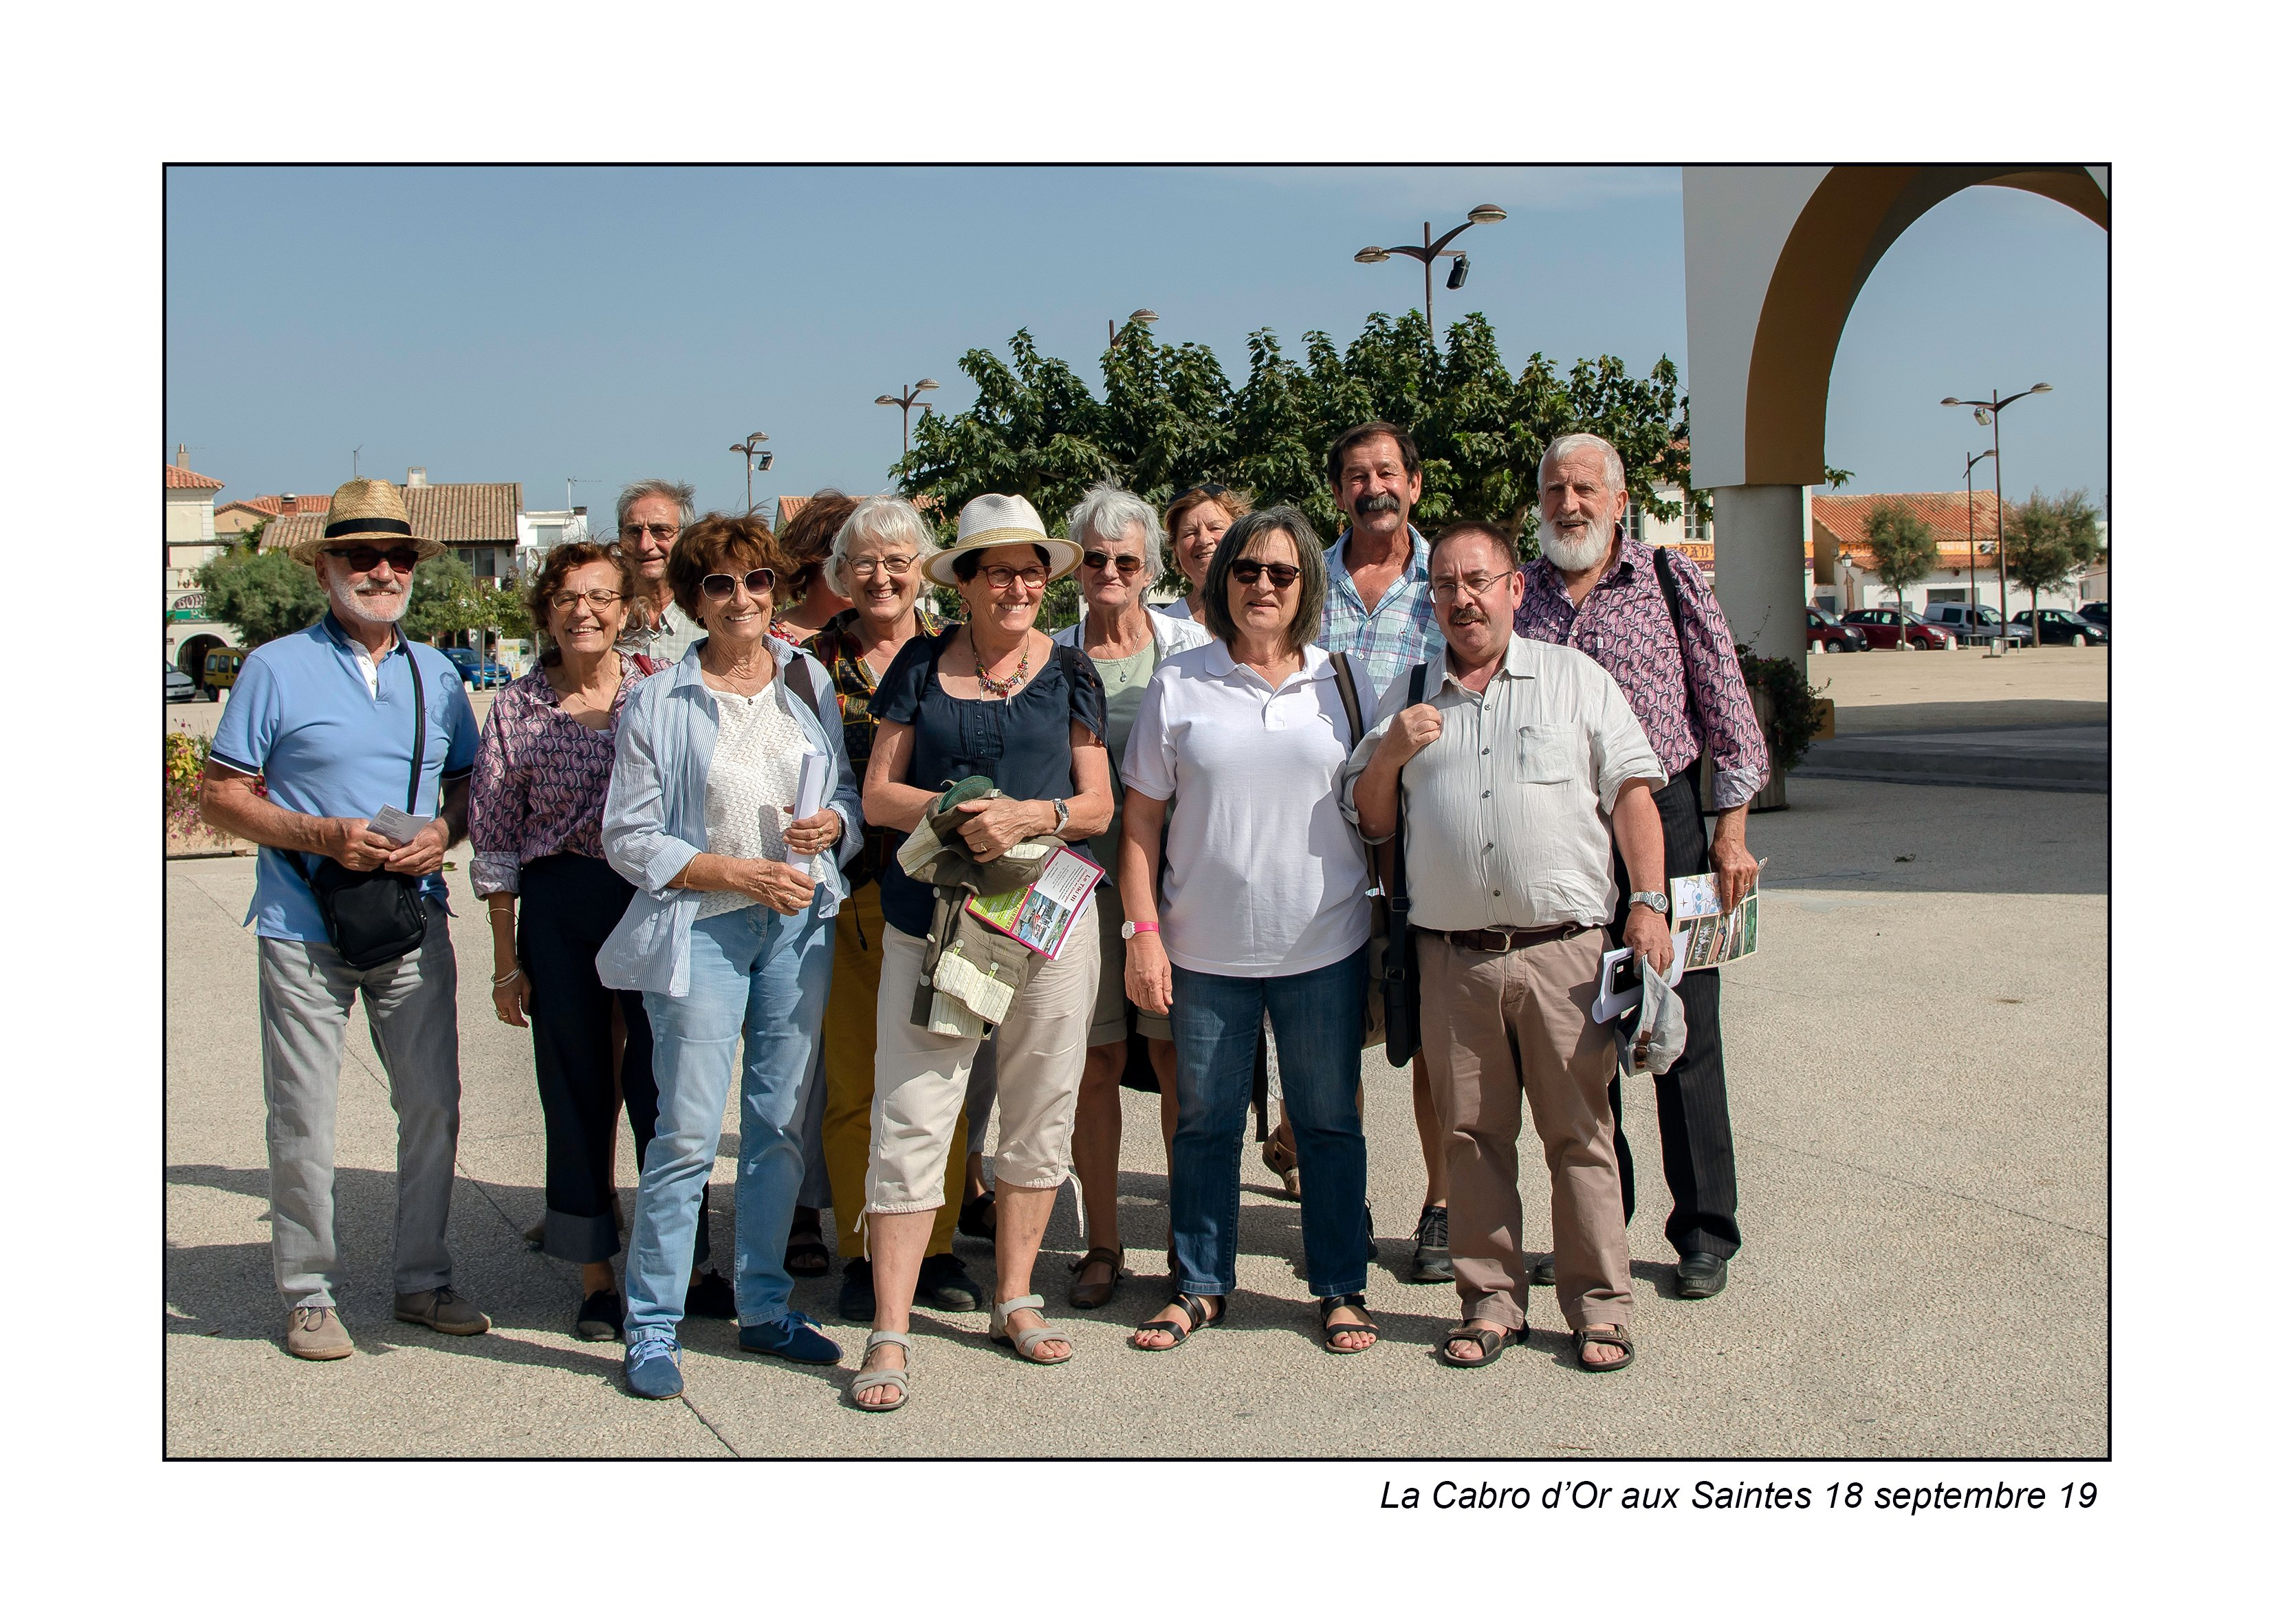 20190918_La-Cabro-d'Or-aux-Saintes-_4973